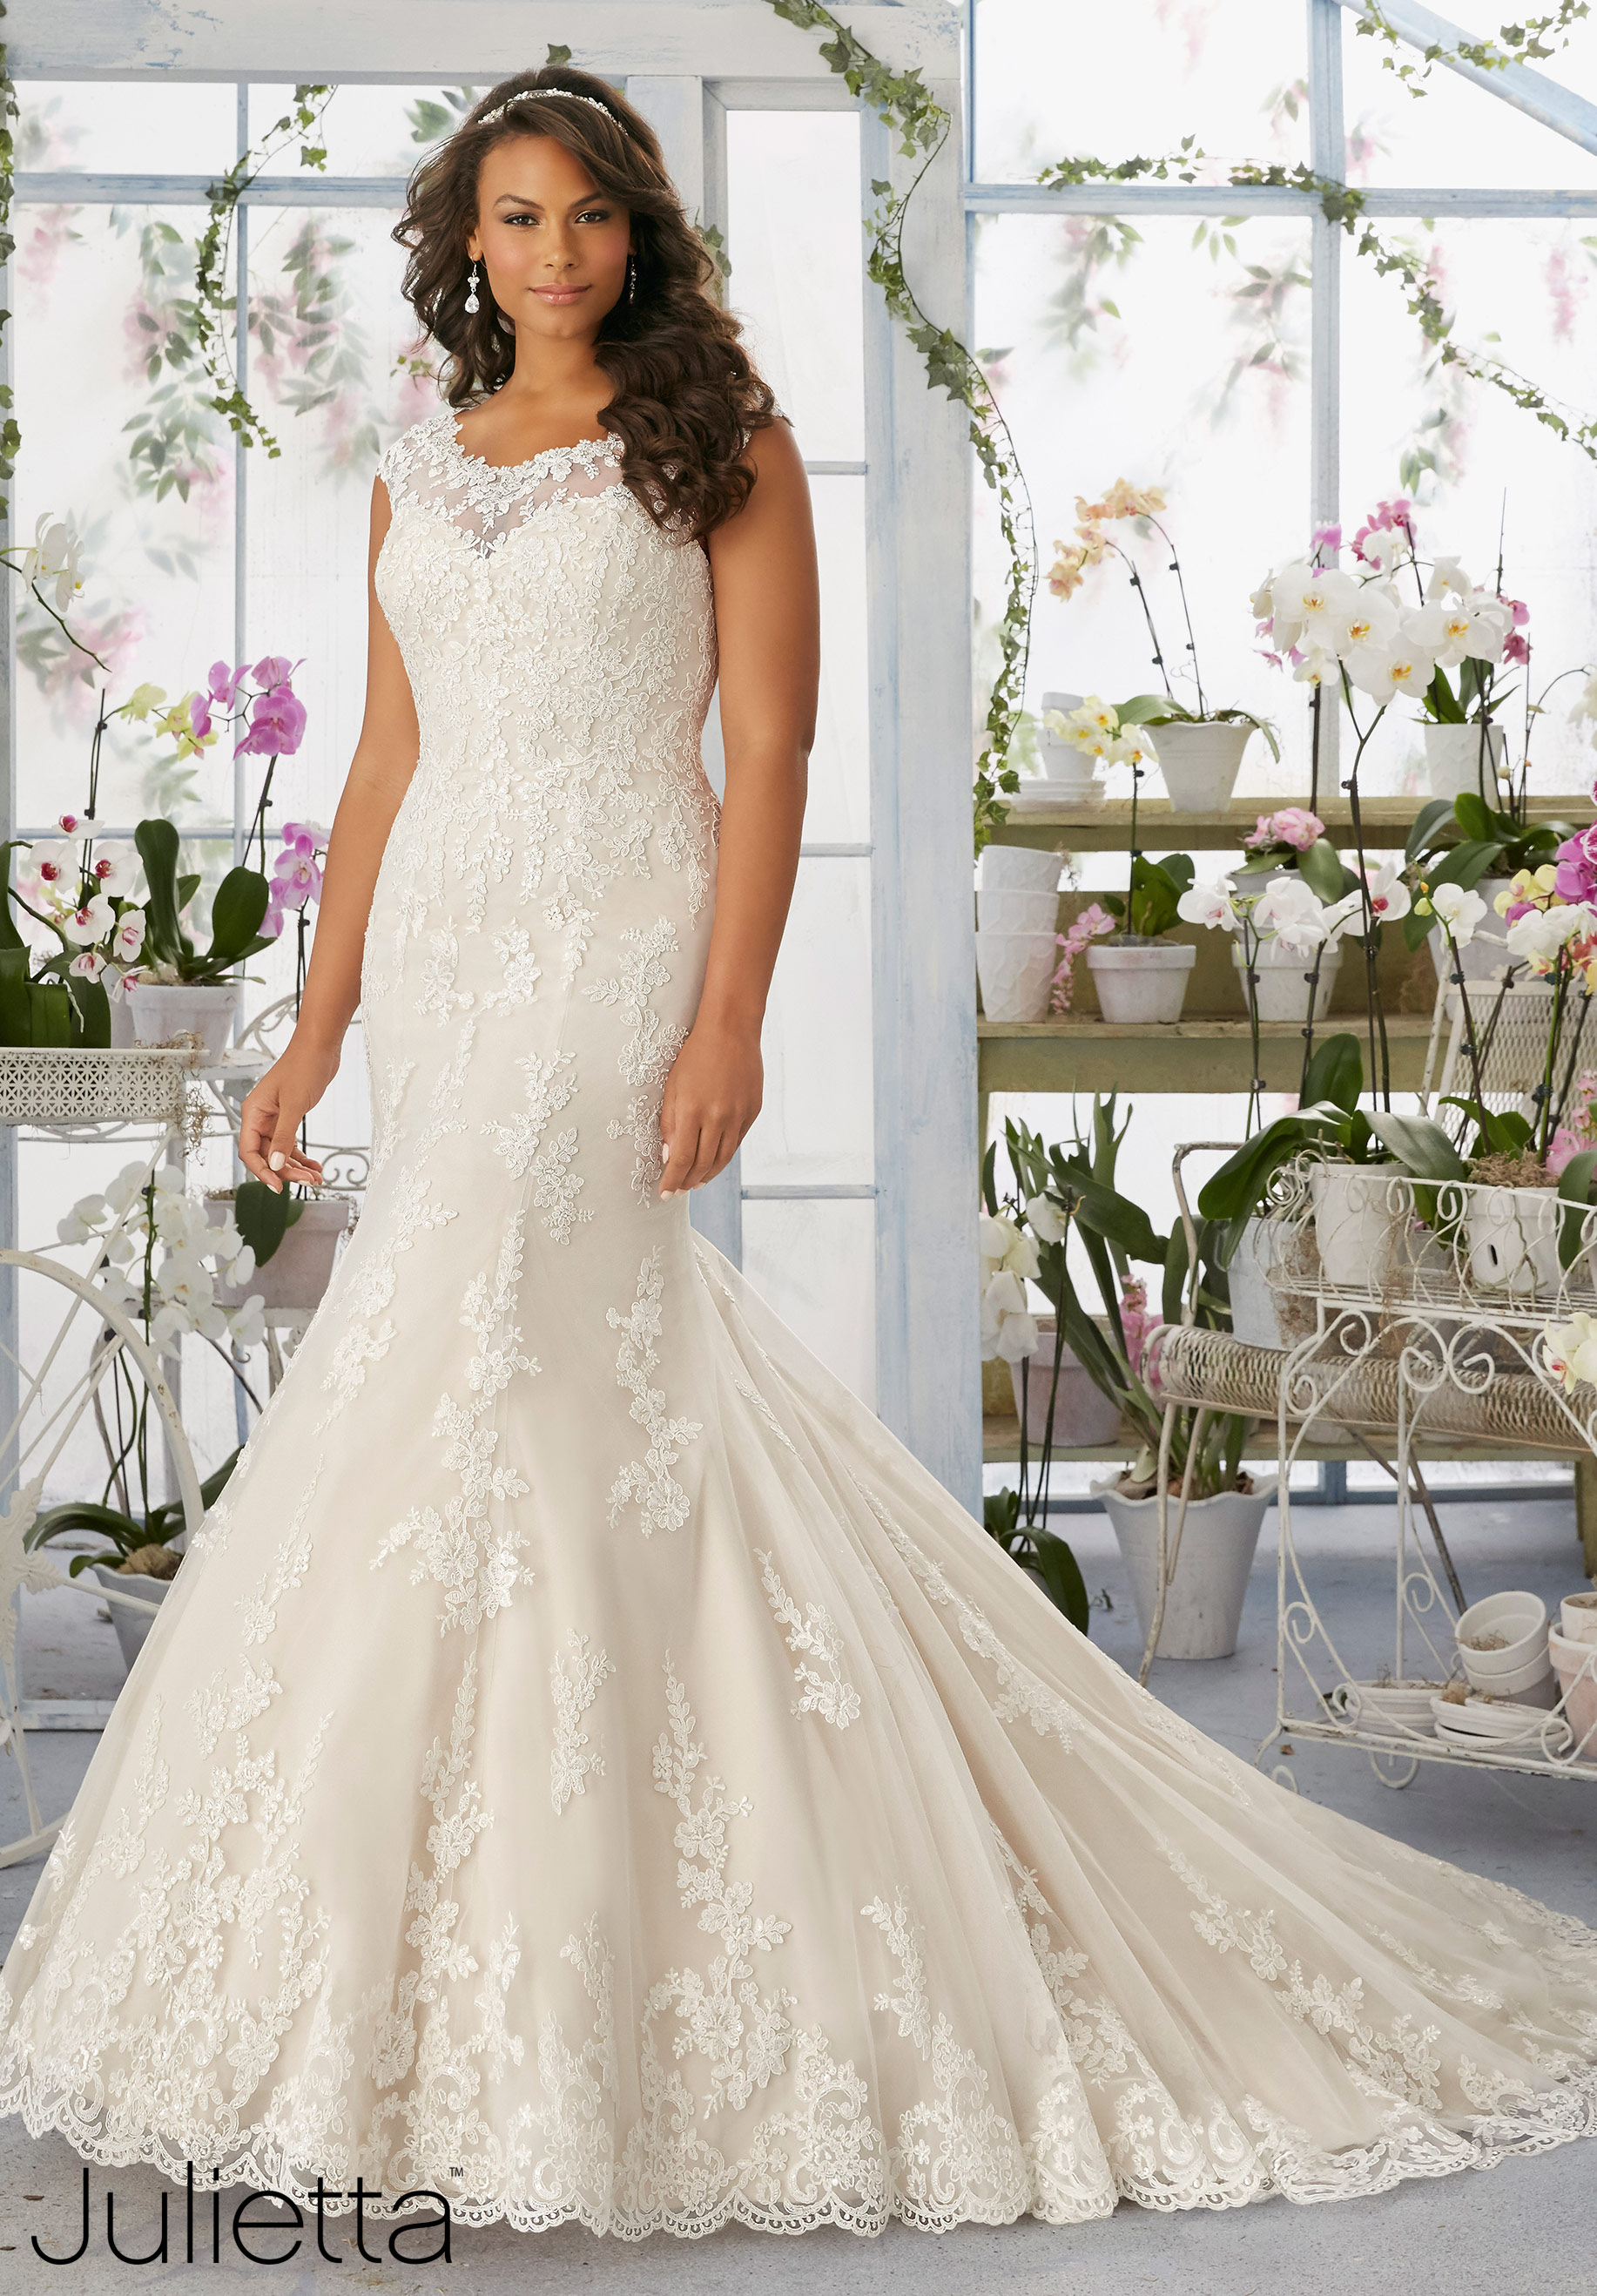 Mori lee wedding dress julietta 3194 catrinas bridal for Mori lee wedding dresses